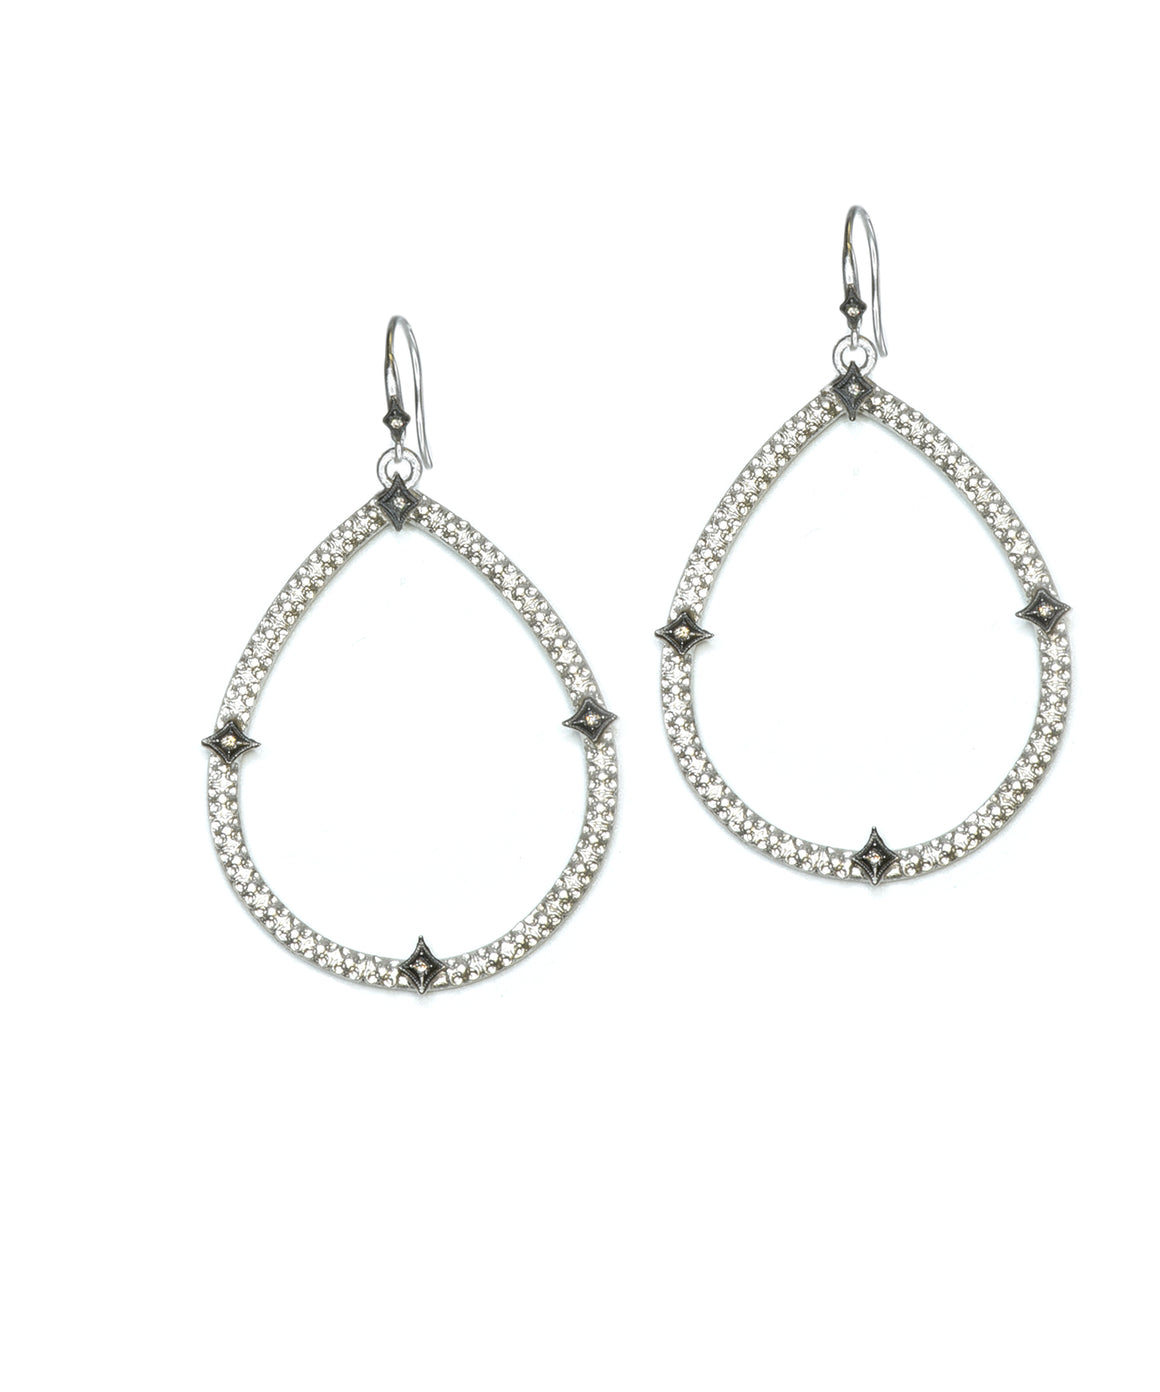 Open pear-shape earrings